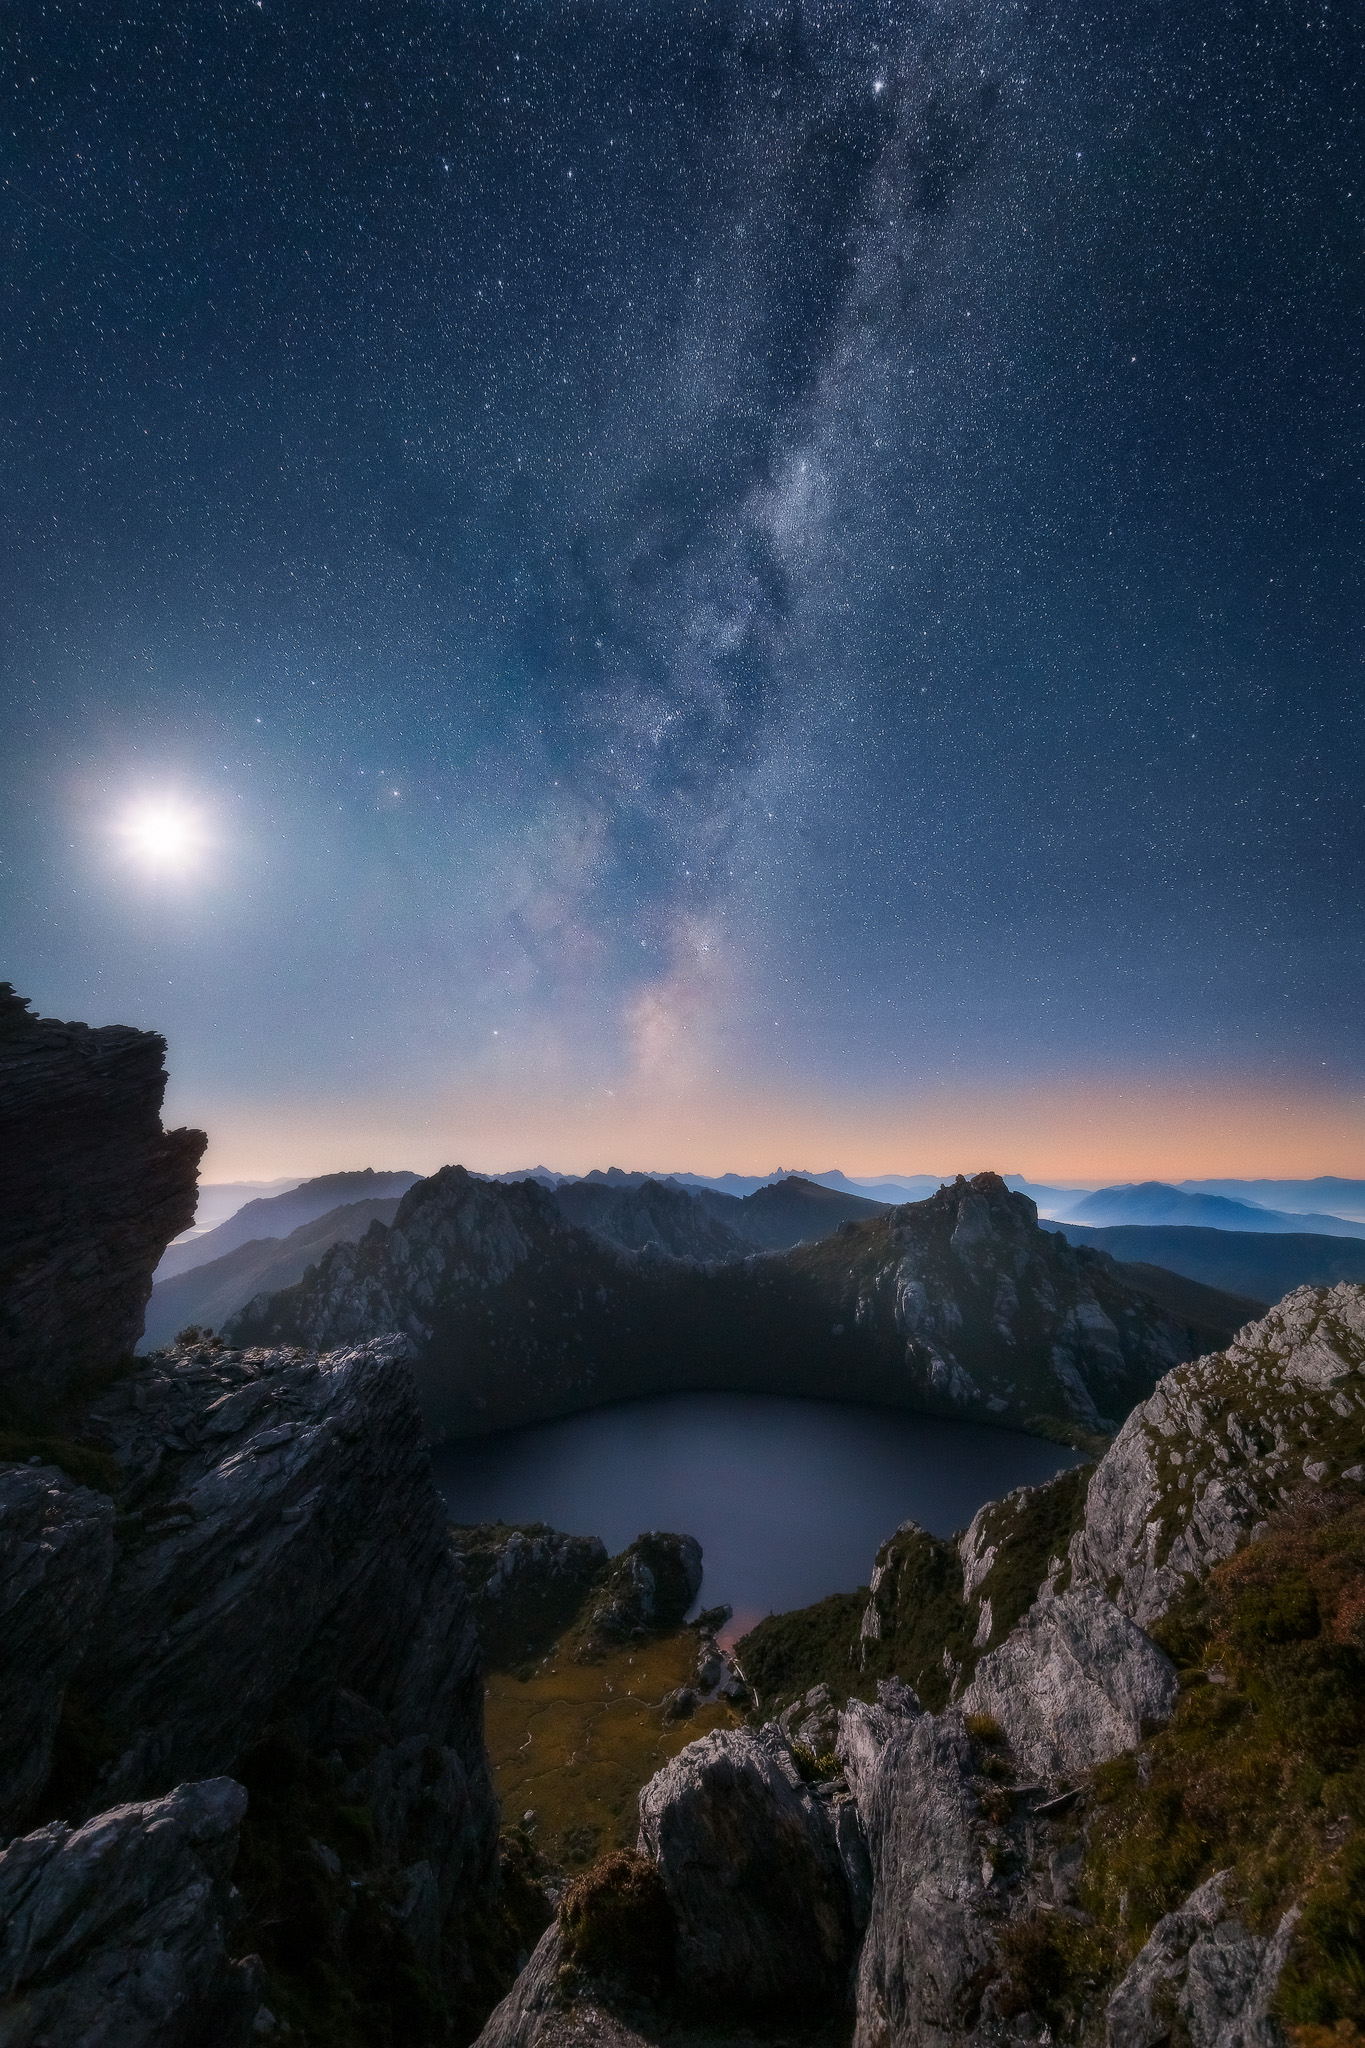 Genesis : Moonrise, Milkway rise and the beginnings of sunrise as shot from the saddle above Lake Oberon.